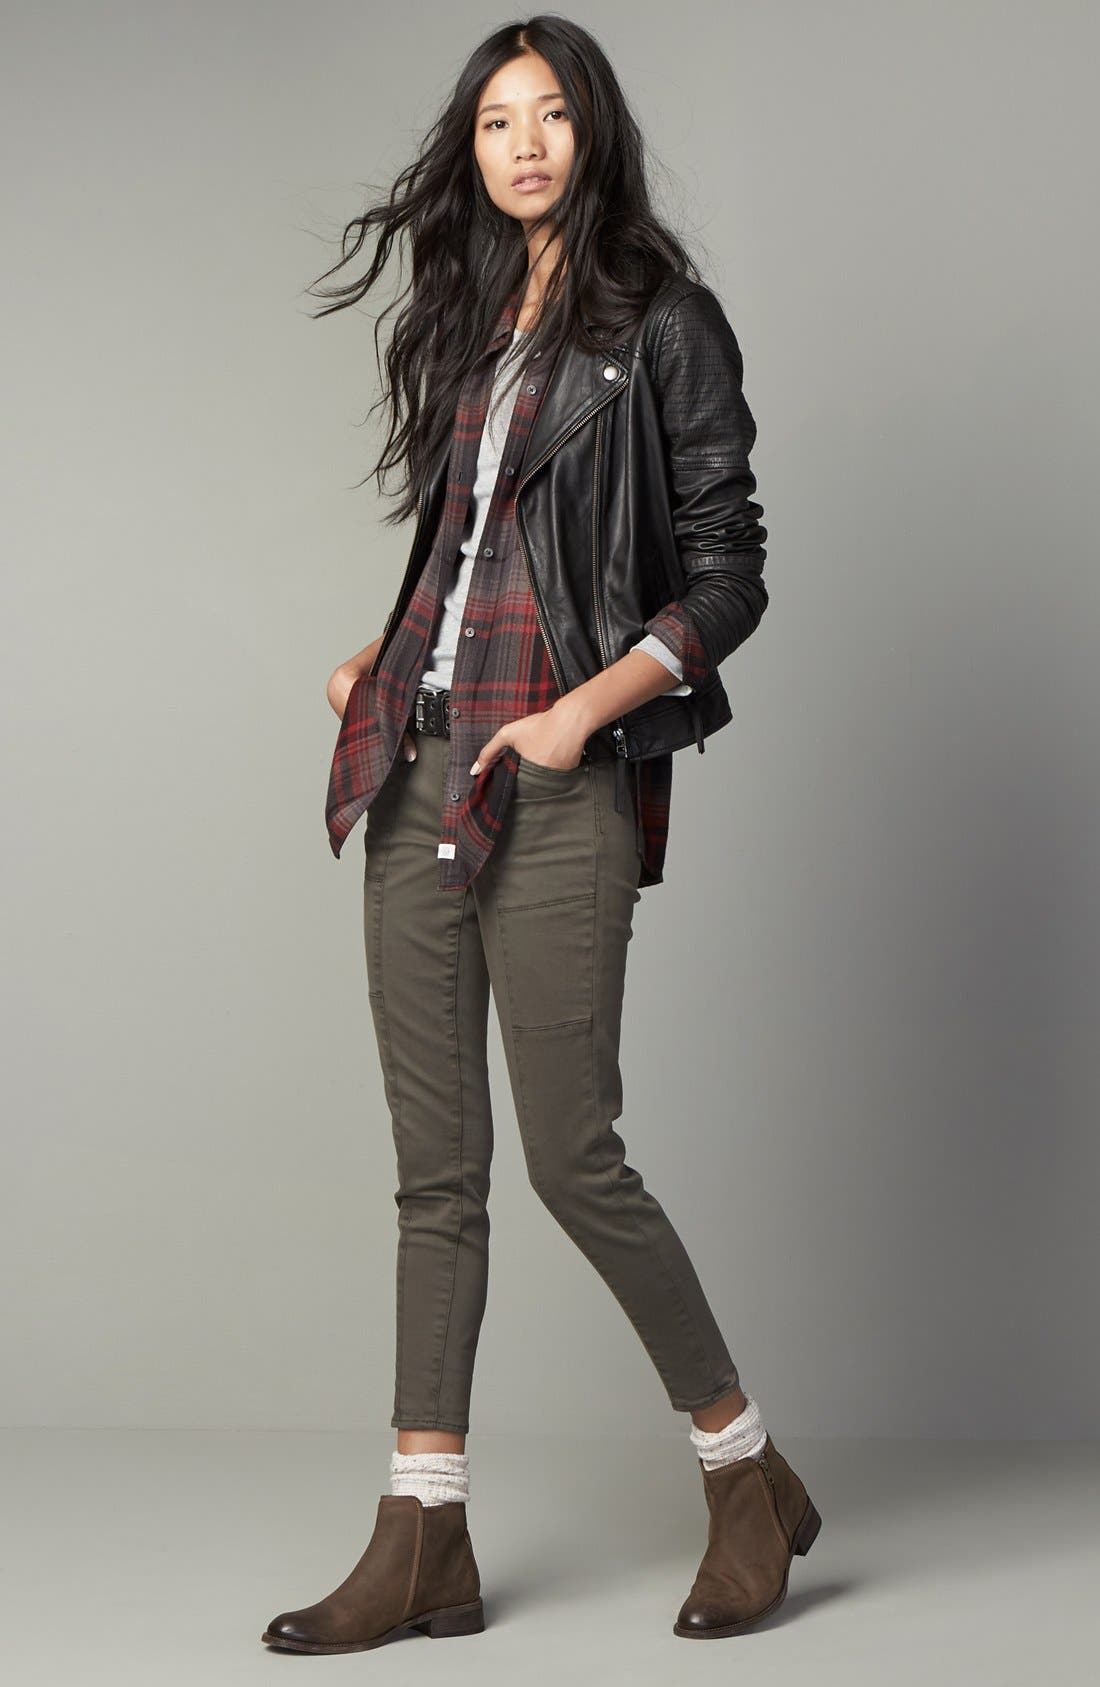 Treasure&Bond Jacket, Shirt & Jeans Outfit with Accessories